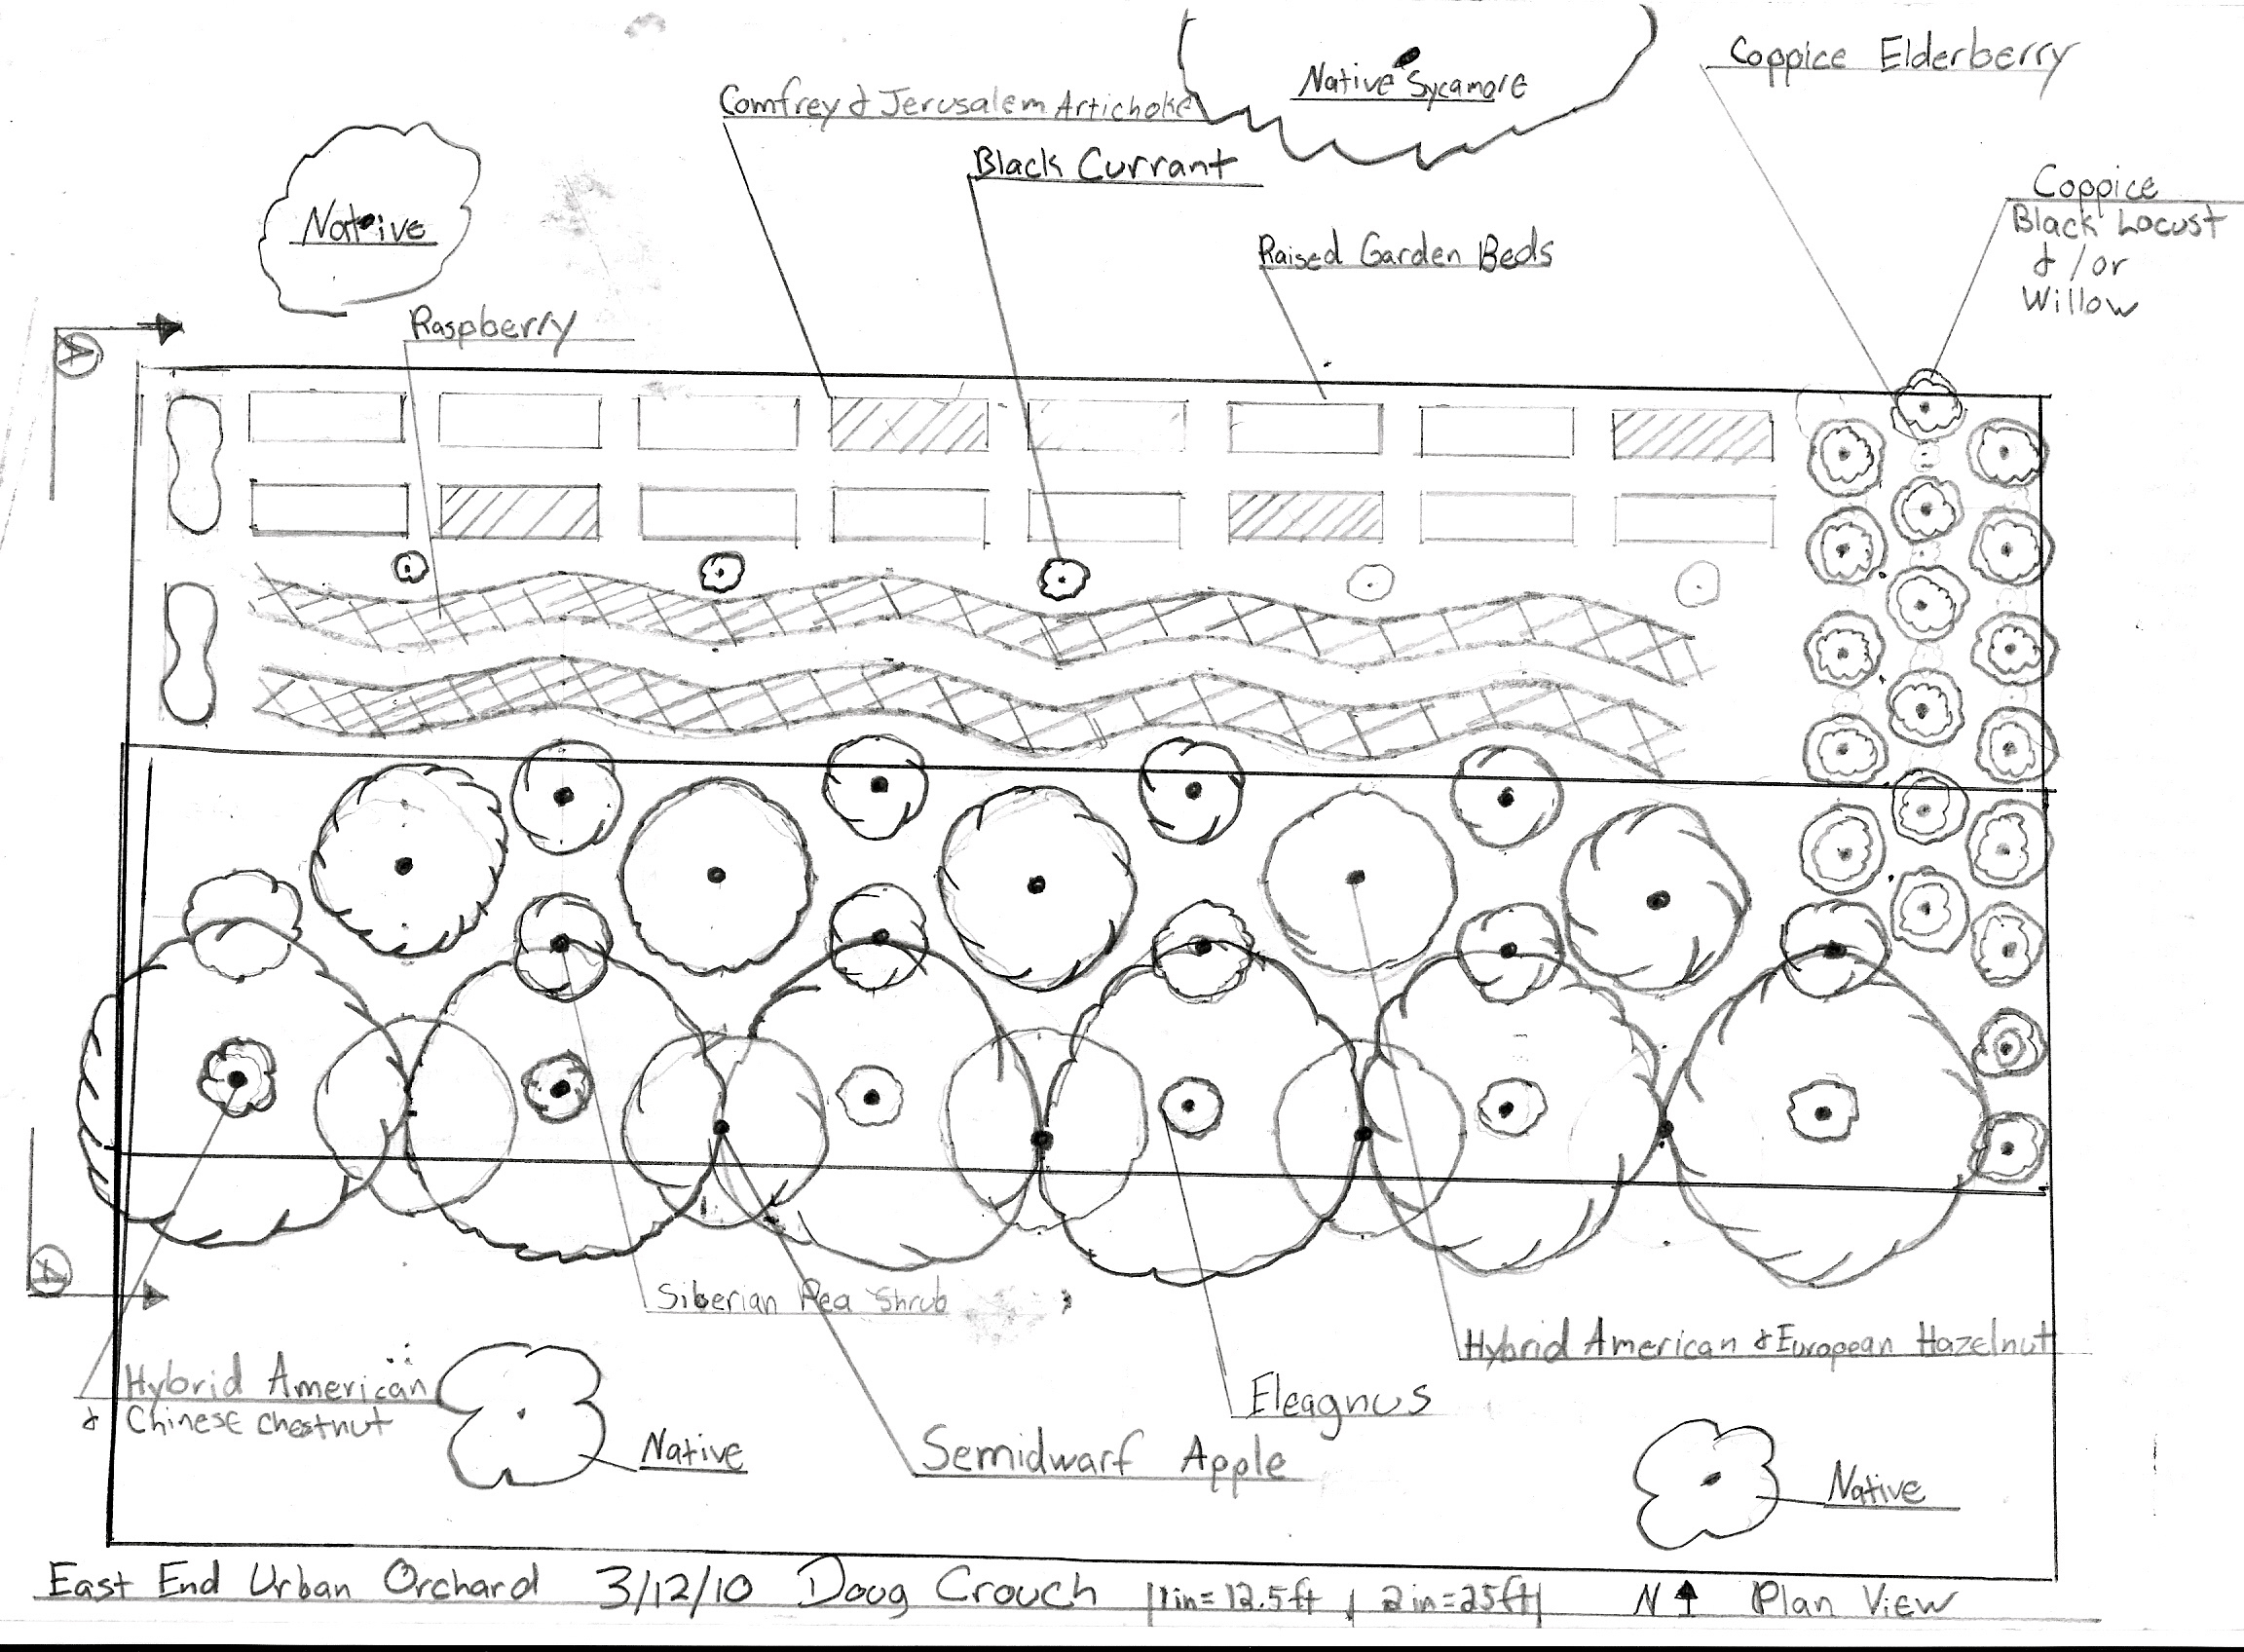 Urban permaculture in cincinnati oh usa treeyo for View plans